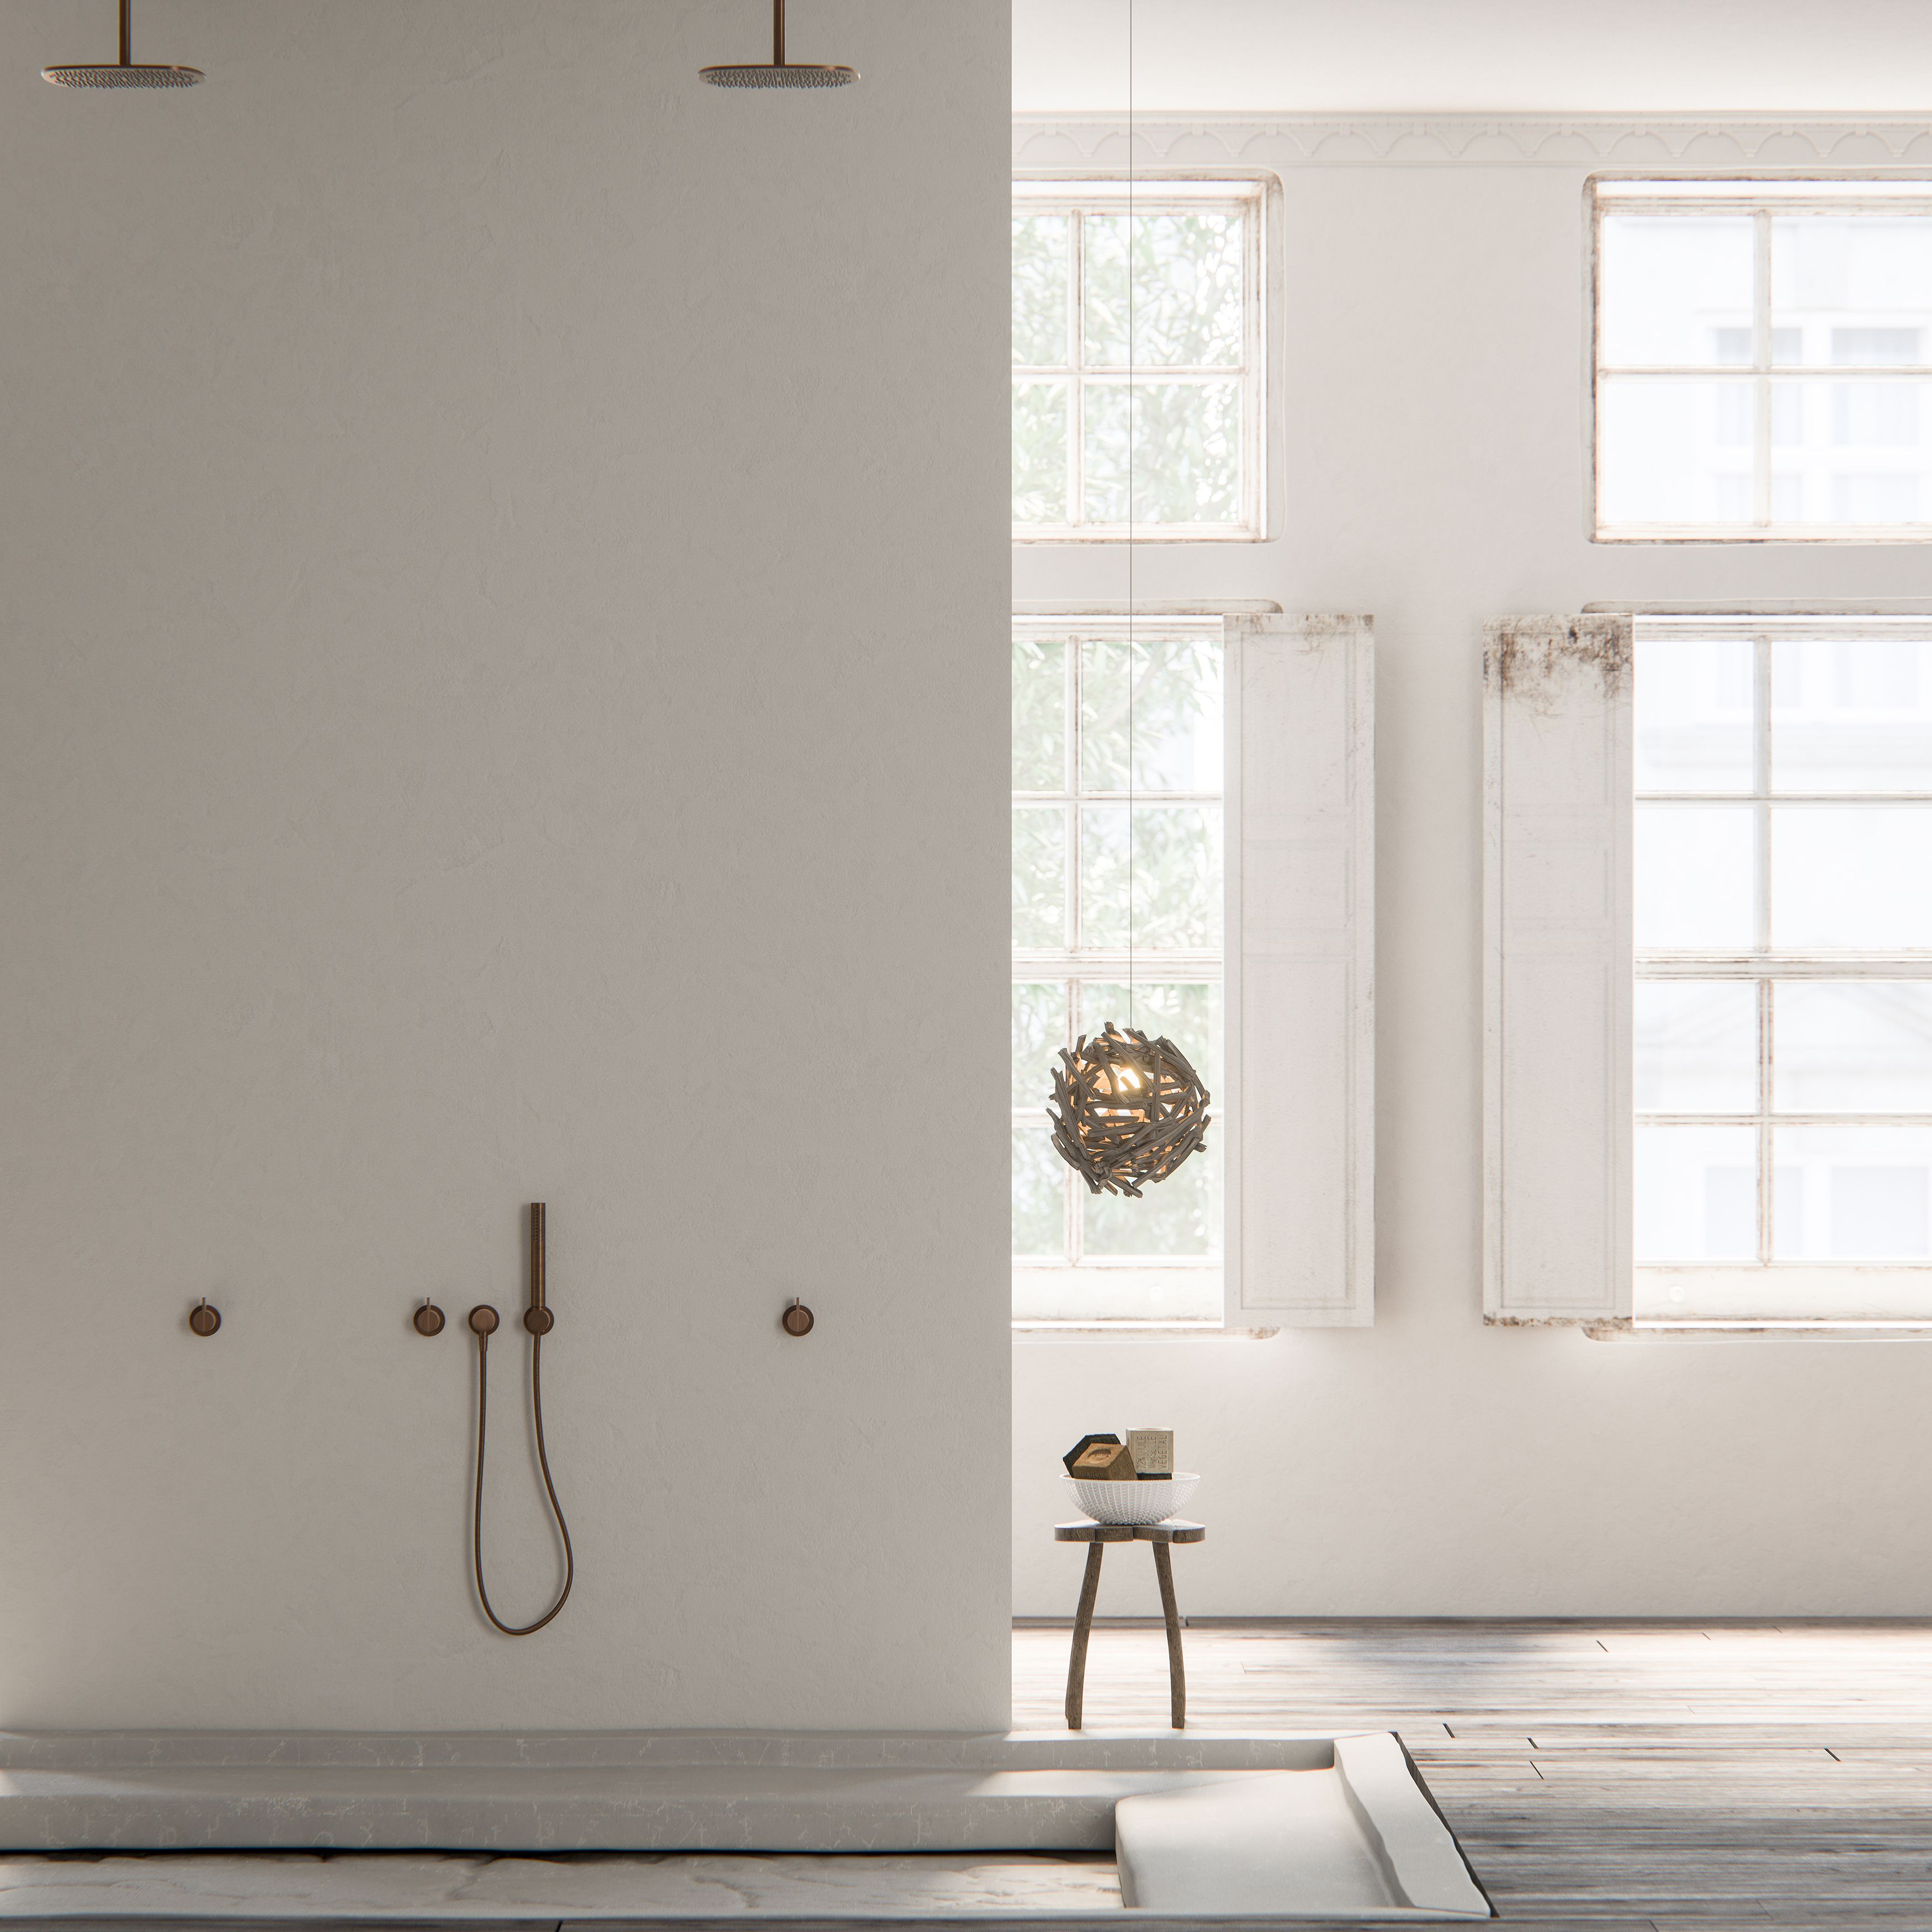 Cocoon exclusive bathroom collections and design projects - Badkamer cocooning ...